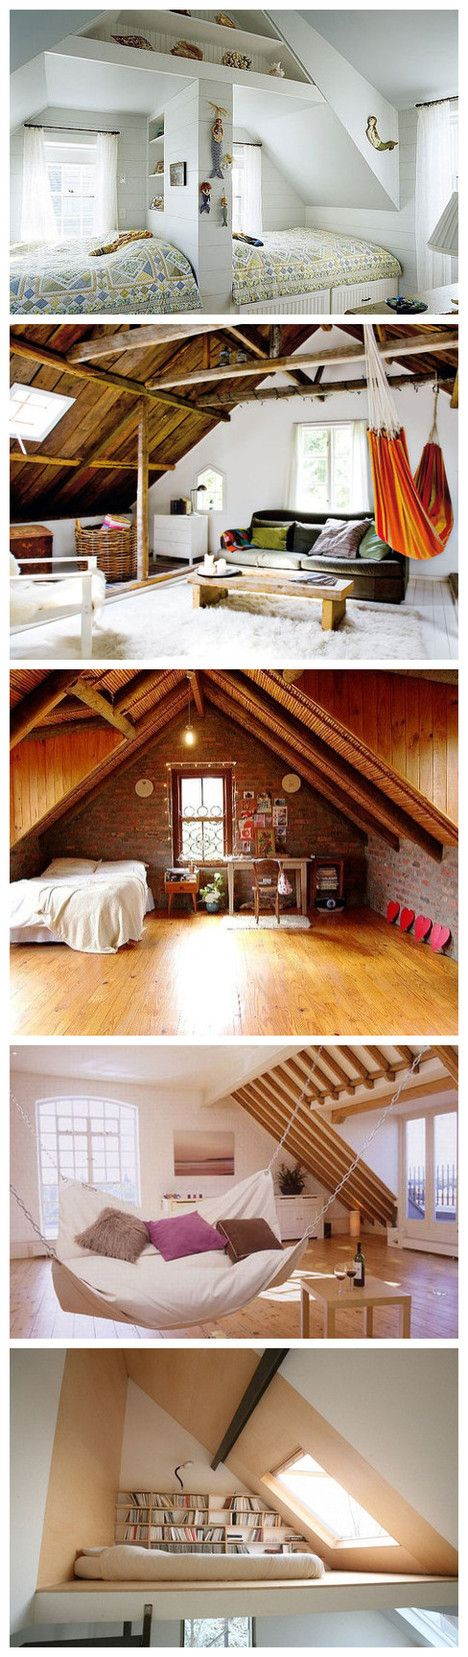 great ideas for my old bedroom at the stone house, that room is now occupied by my twin great nieces! they would love this.